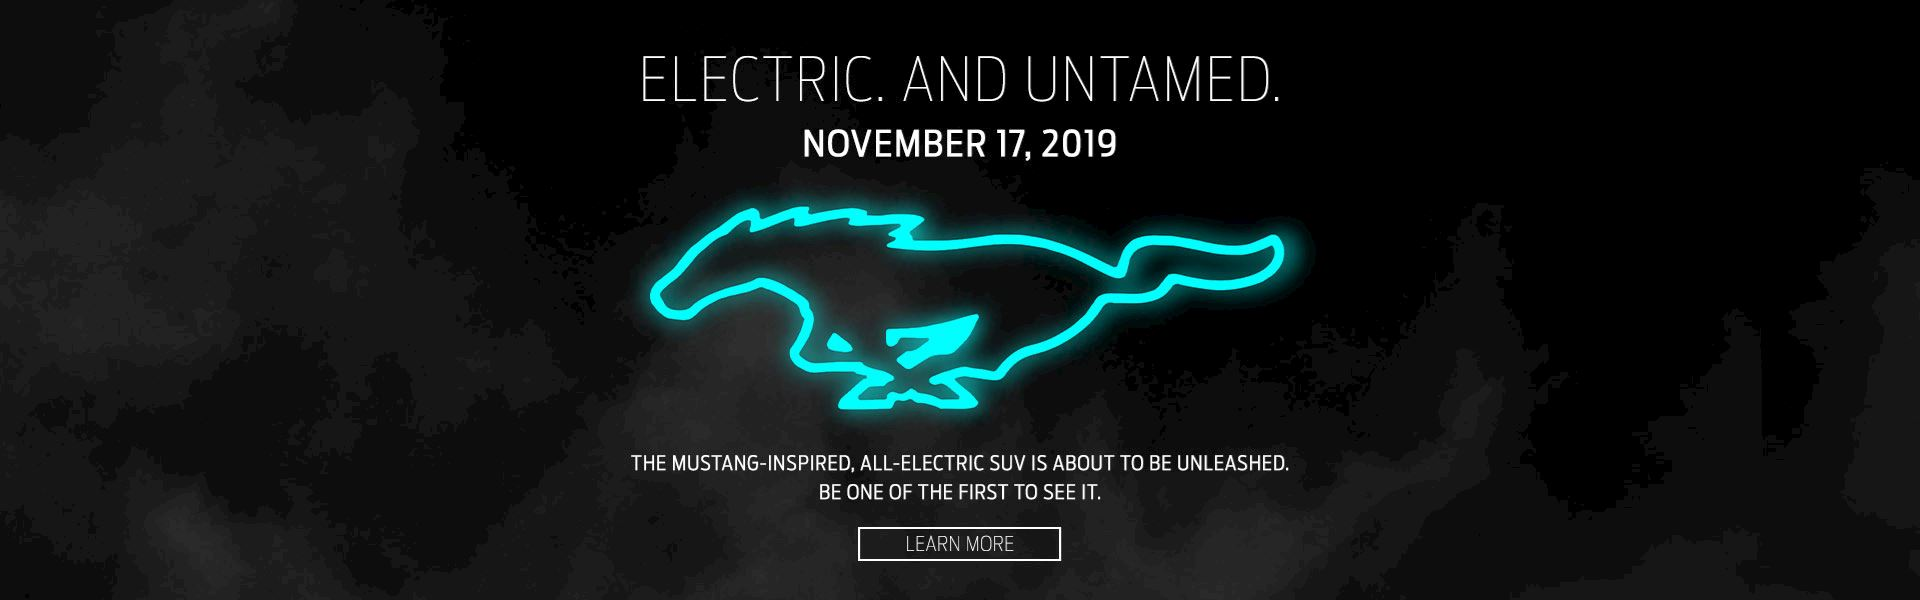 Electric. Untamed. The all new Mustang inspired all-electric SUV Reveal